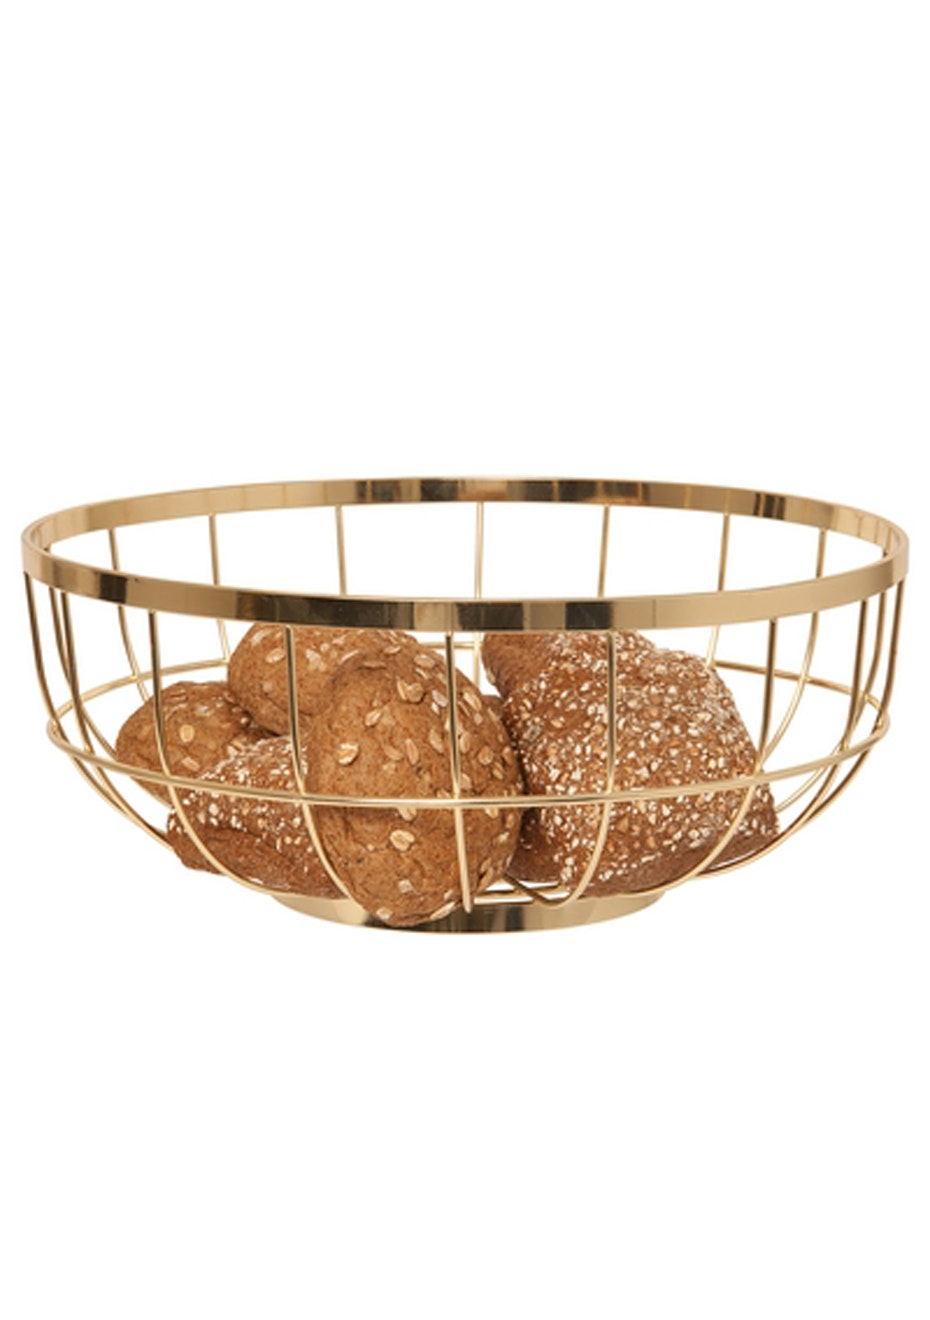 Pt Home - Fruit Bowl Open Grid - Gold